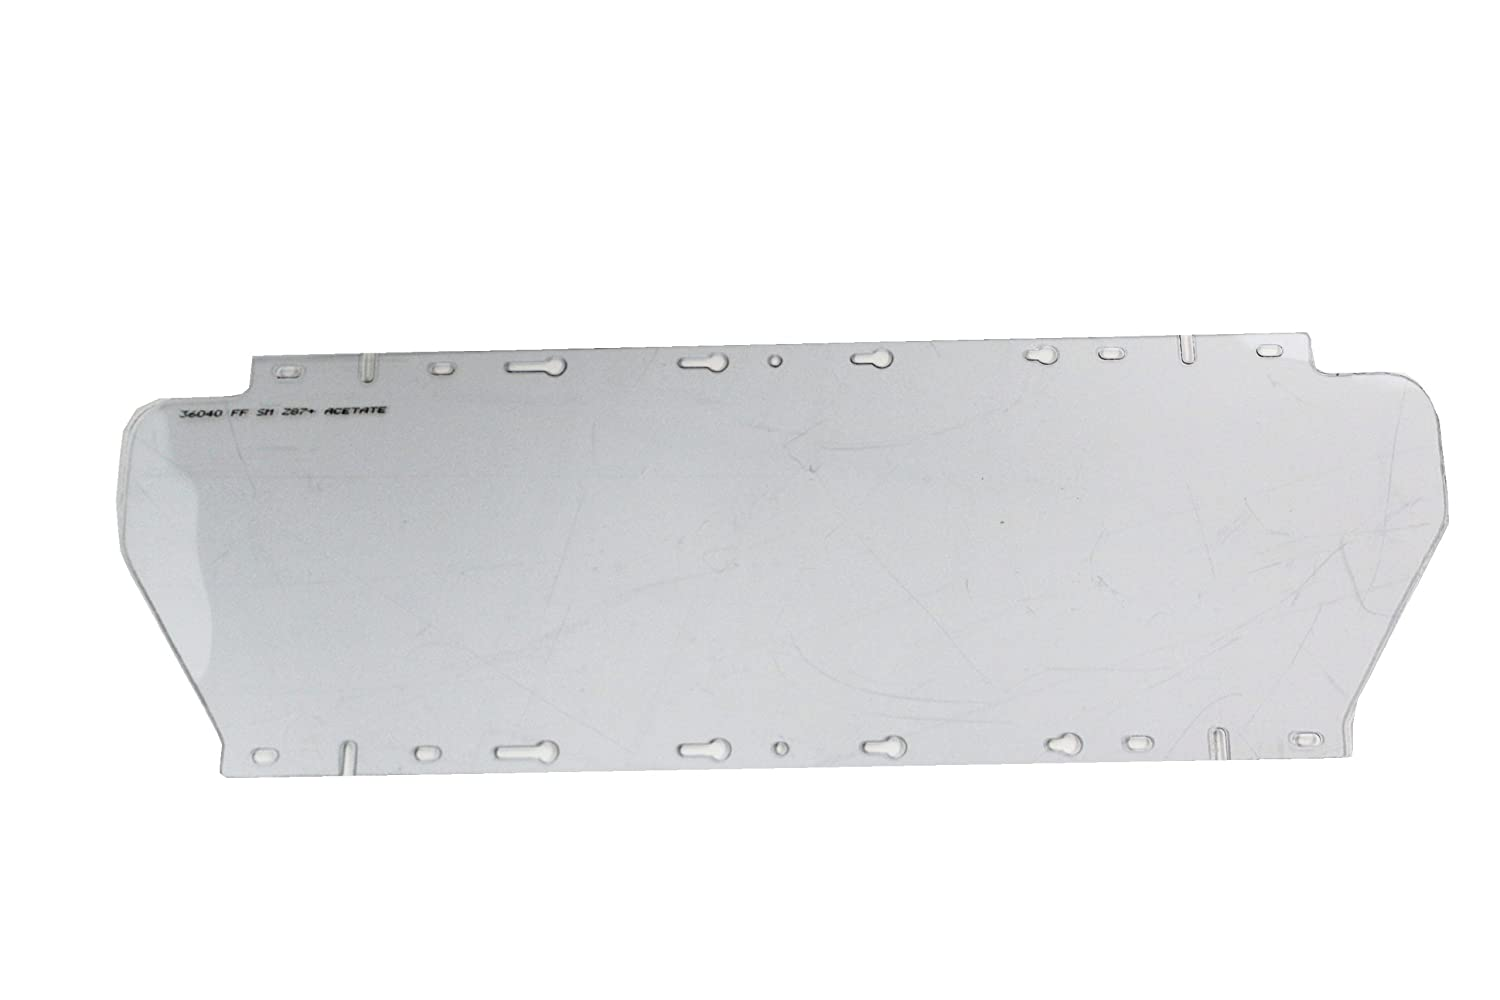 Sellstrom Replacement Window for 380 Series Safety Face Shields, Anti-Fog Coating Acetate, Clear Tint, S36040